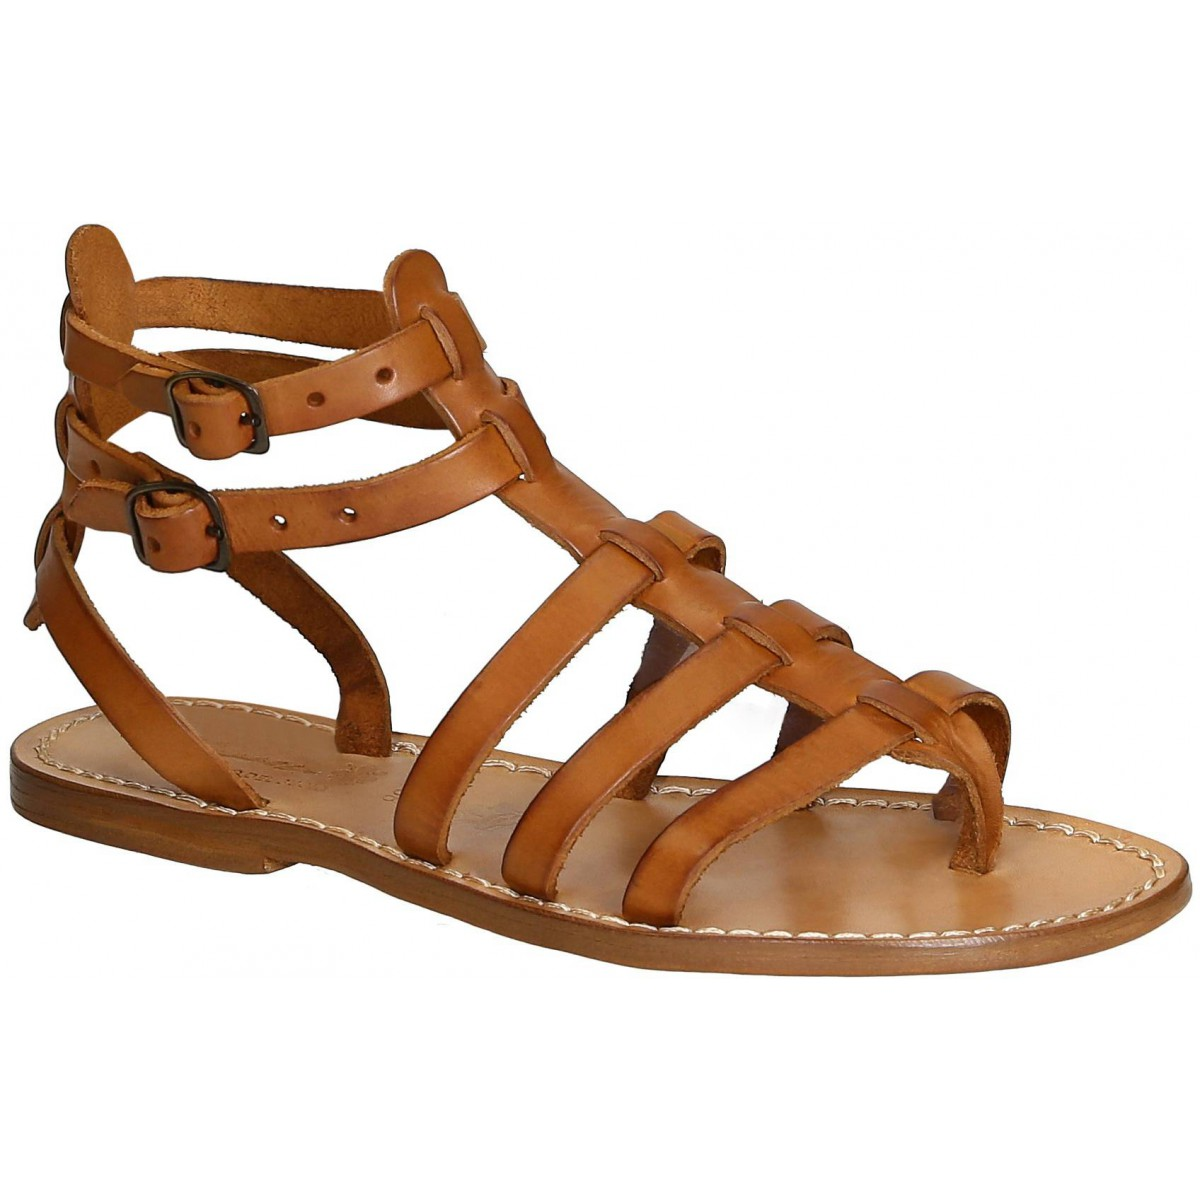 4310a2856500 Flat gladiator sandals for women Handmade in Italy in cuir leather. Loading  zoom